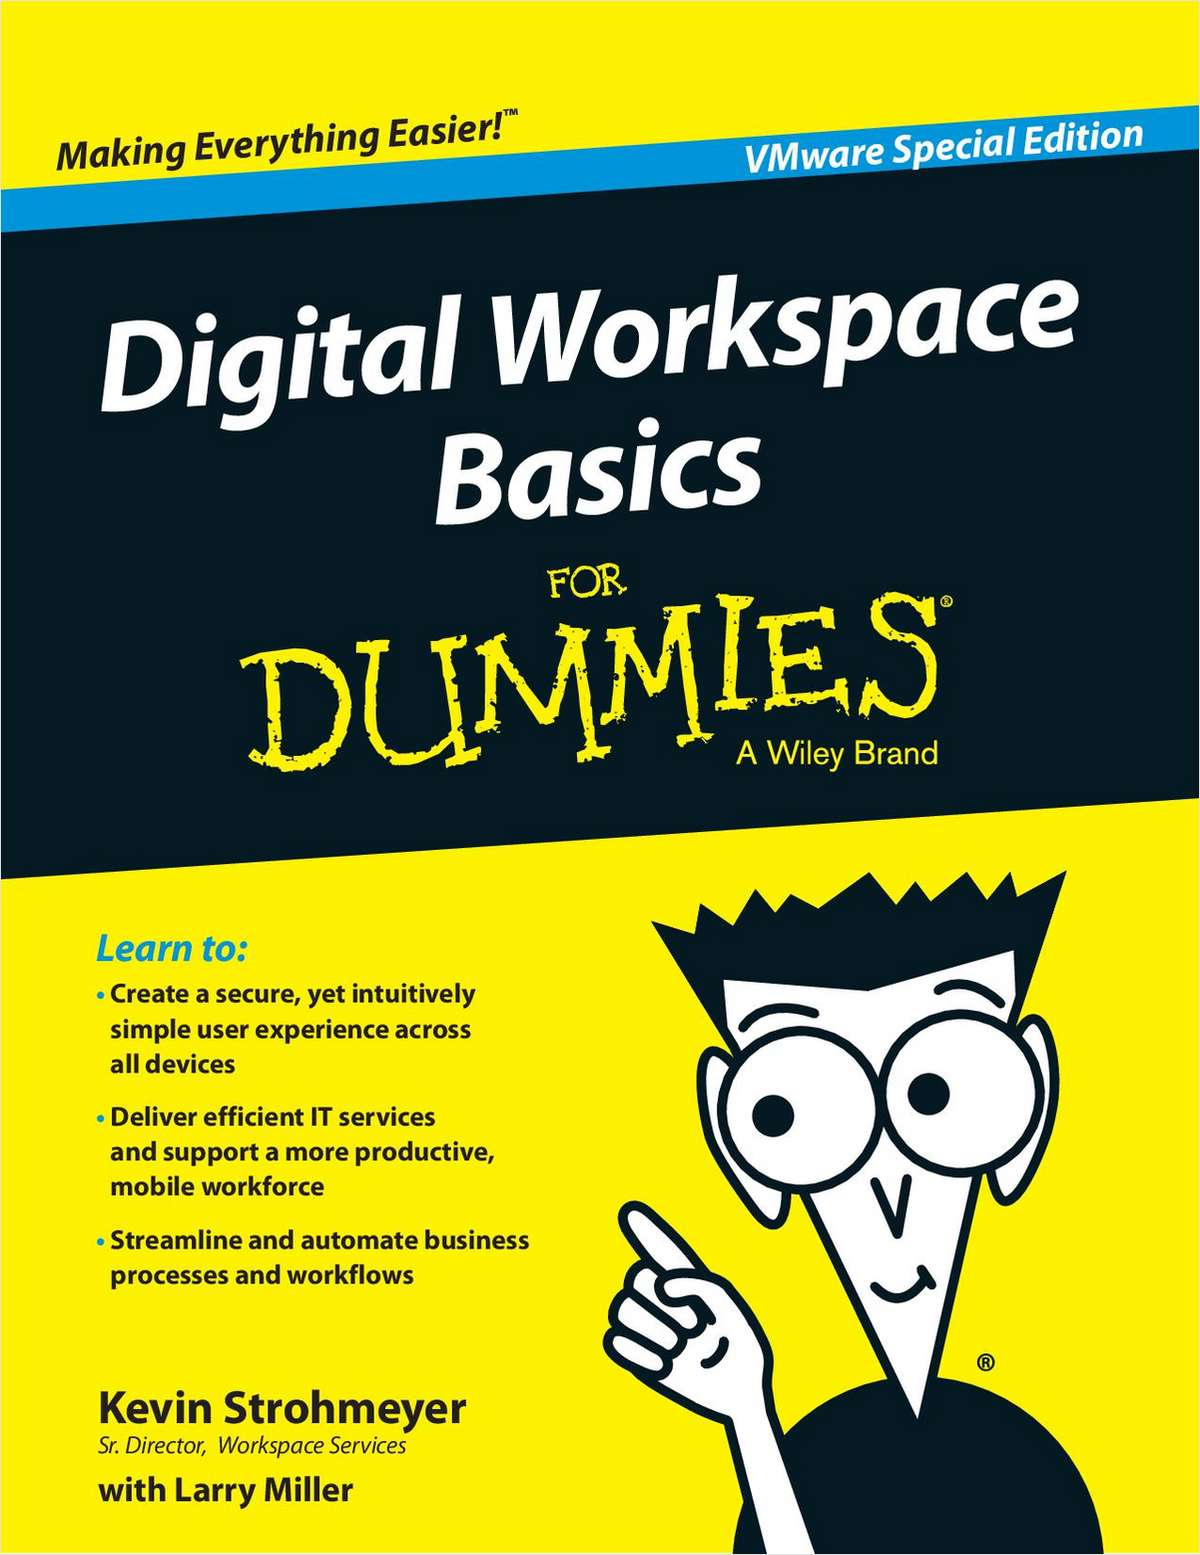 Digital Workspace Basics For Dummies